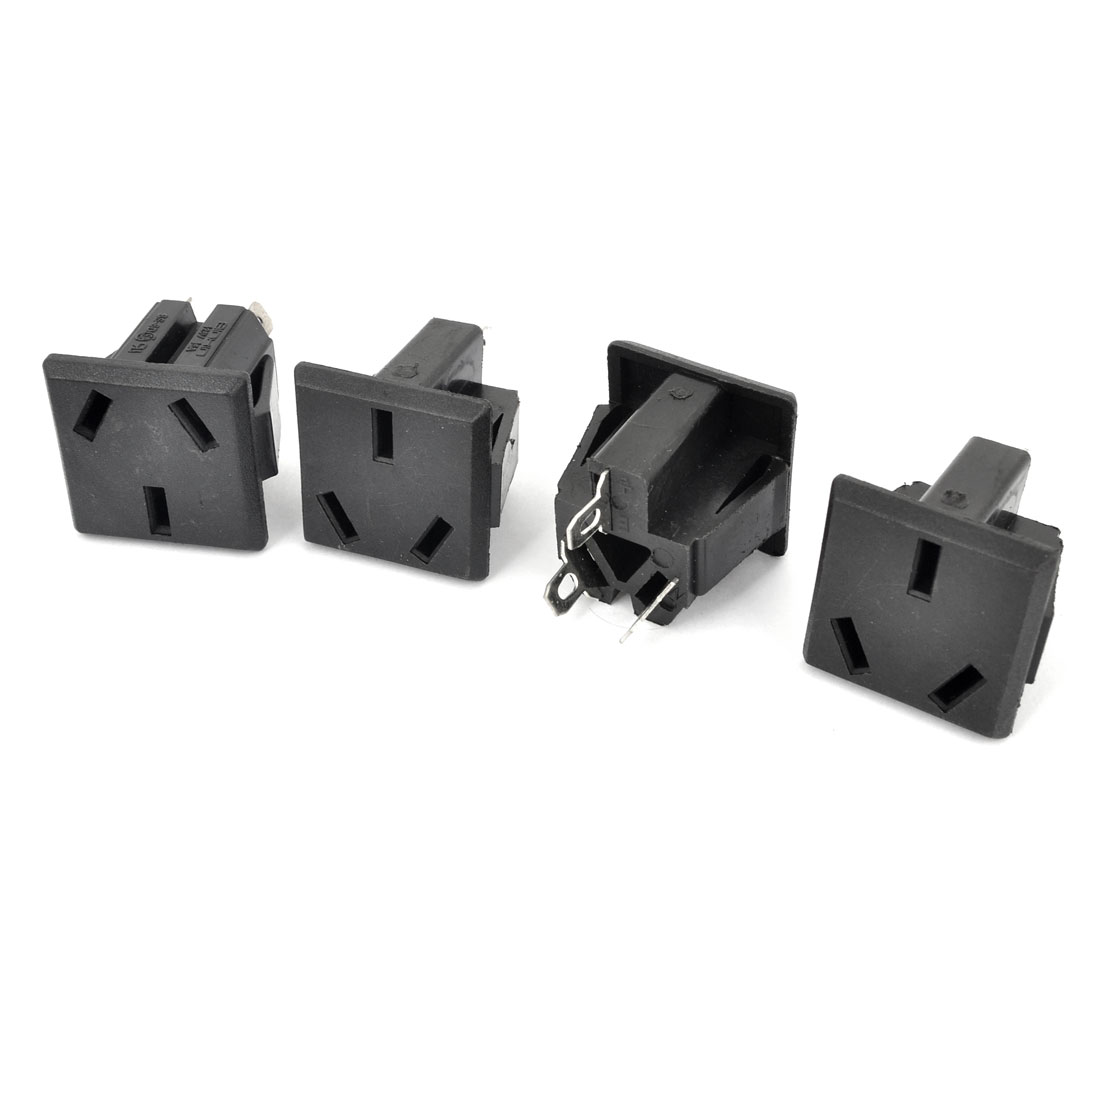 4 Pcs Black Plastic Panel Mount 3 Terminals AU 3P Power Socket AC 250V 10A